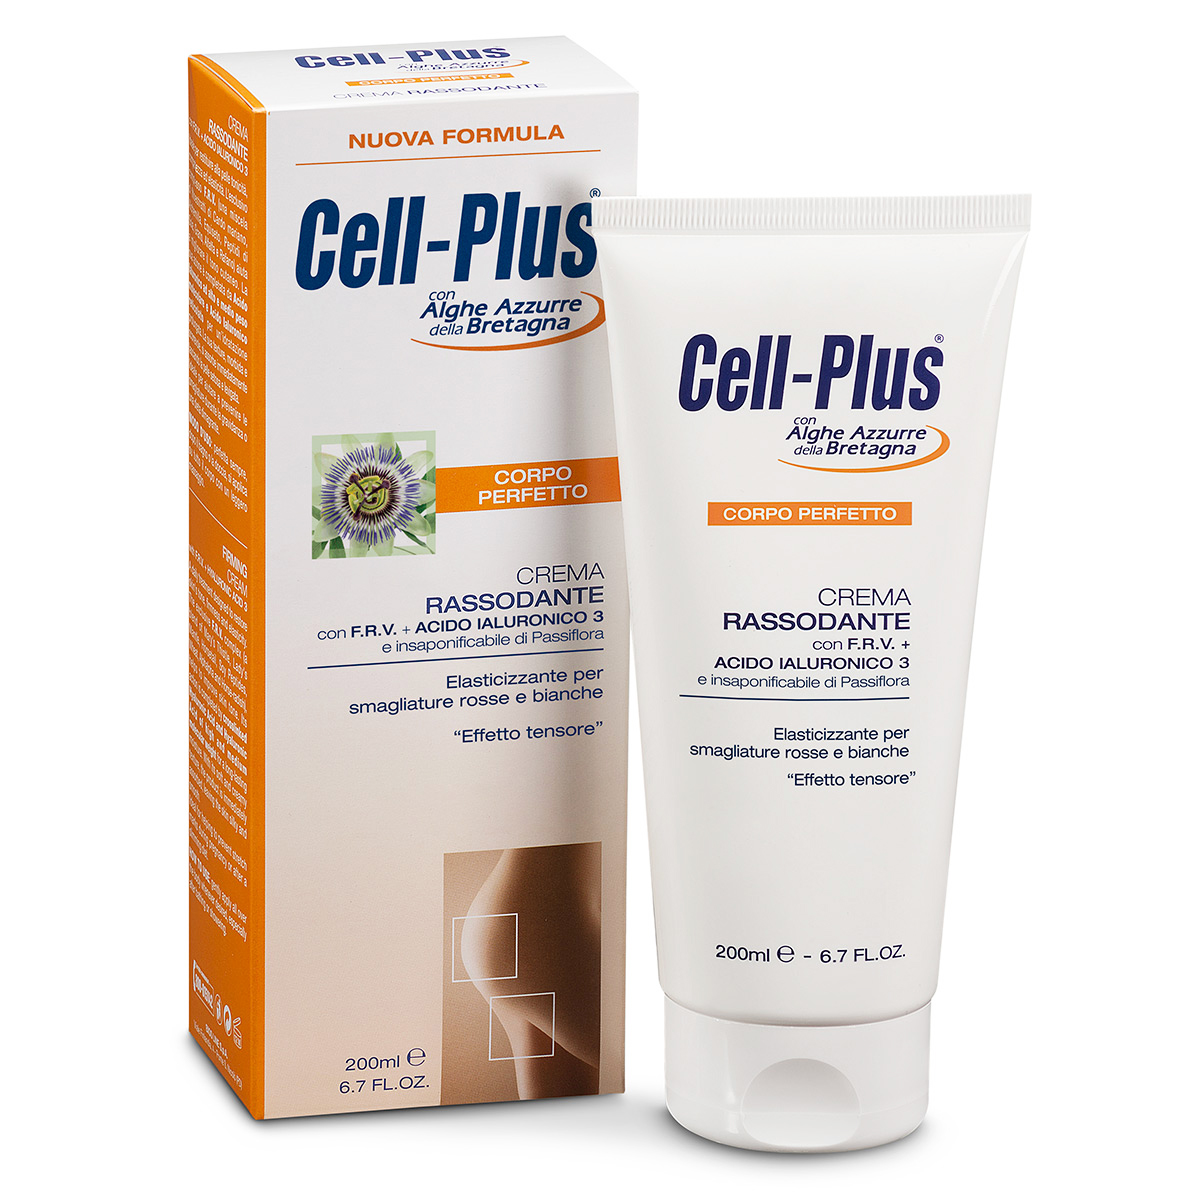 Cell-Plus Crema Rassodante